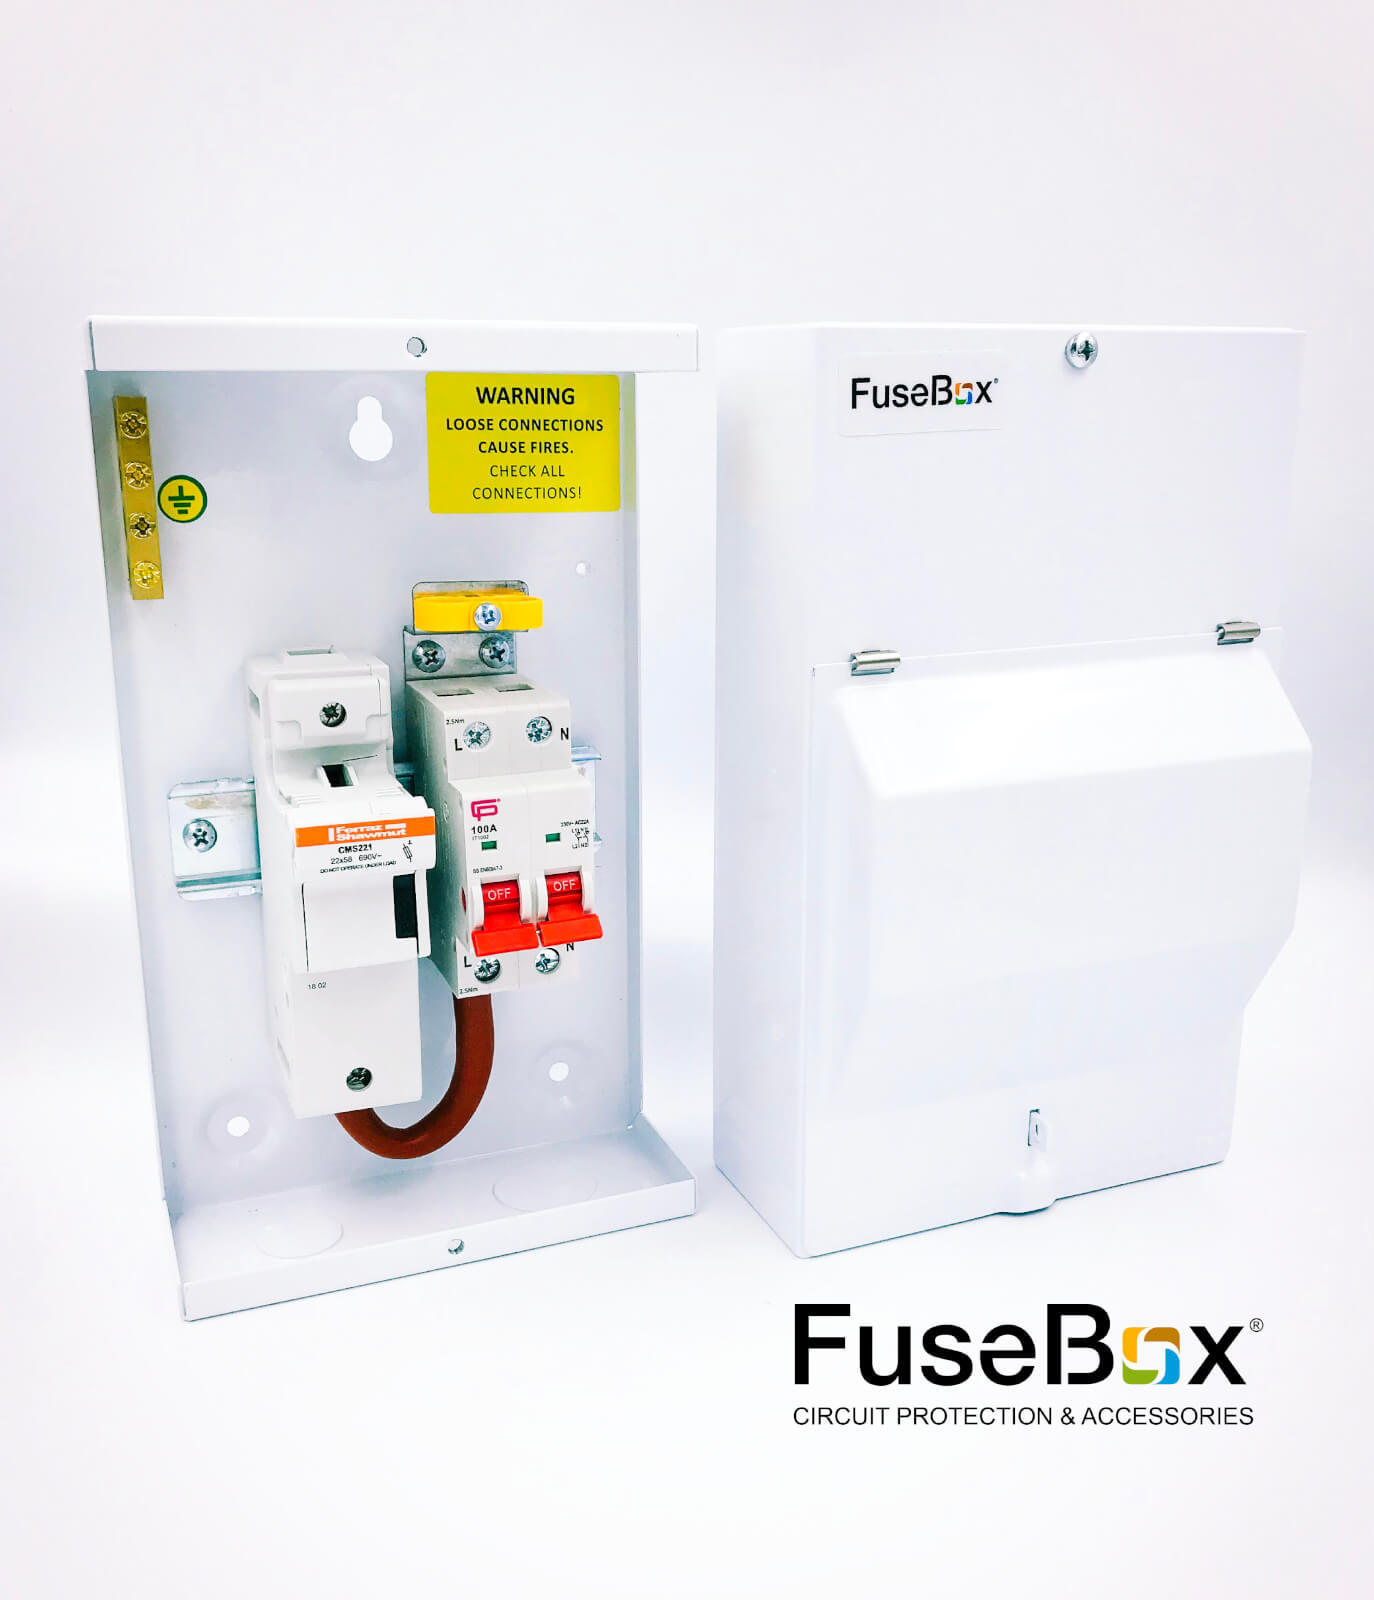 Sf0100 Fusebox Metal Clad Fused Mains Switch Isolator 100a 1p N Inc Fuse Box Fuses 63a 80a